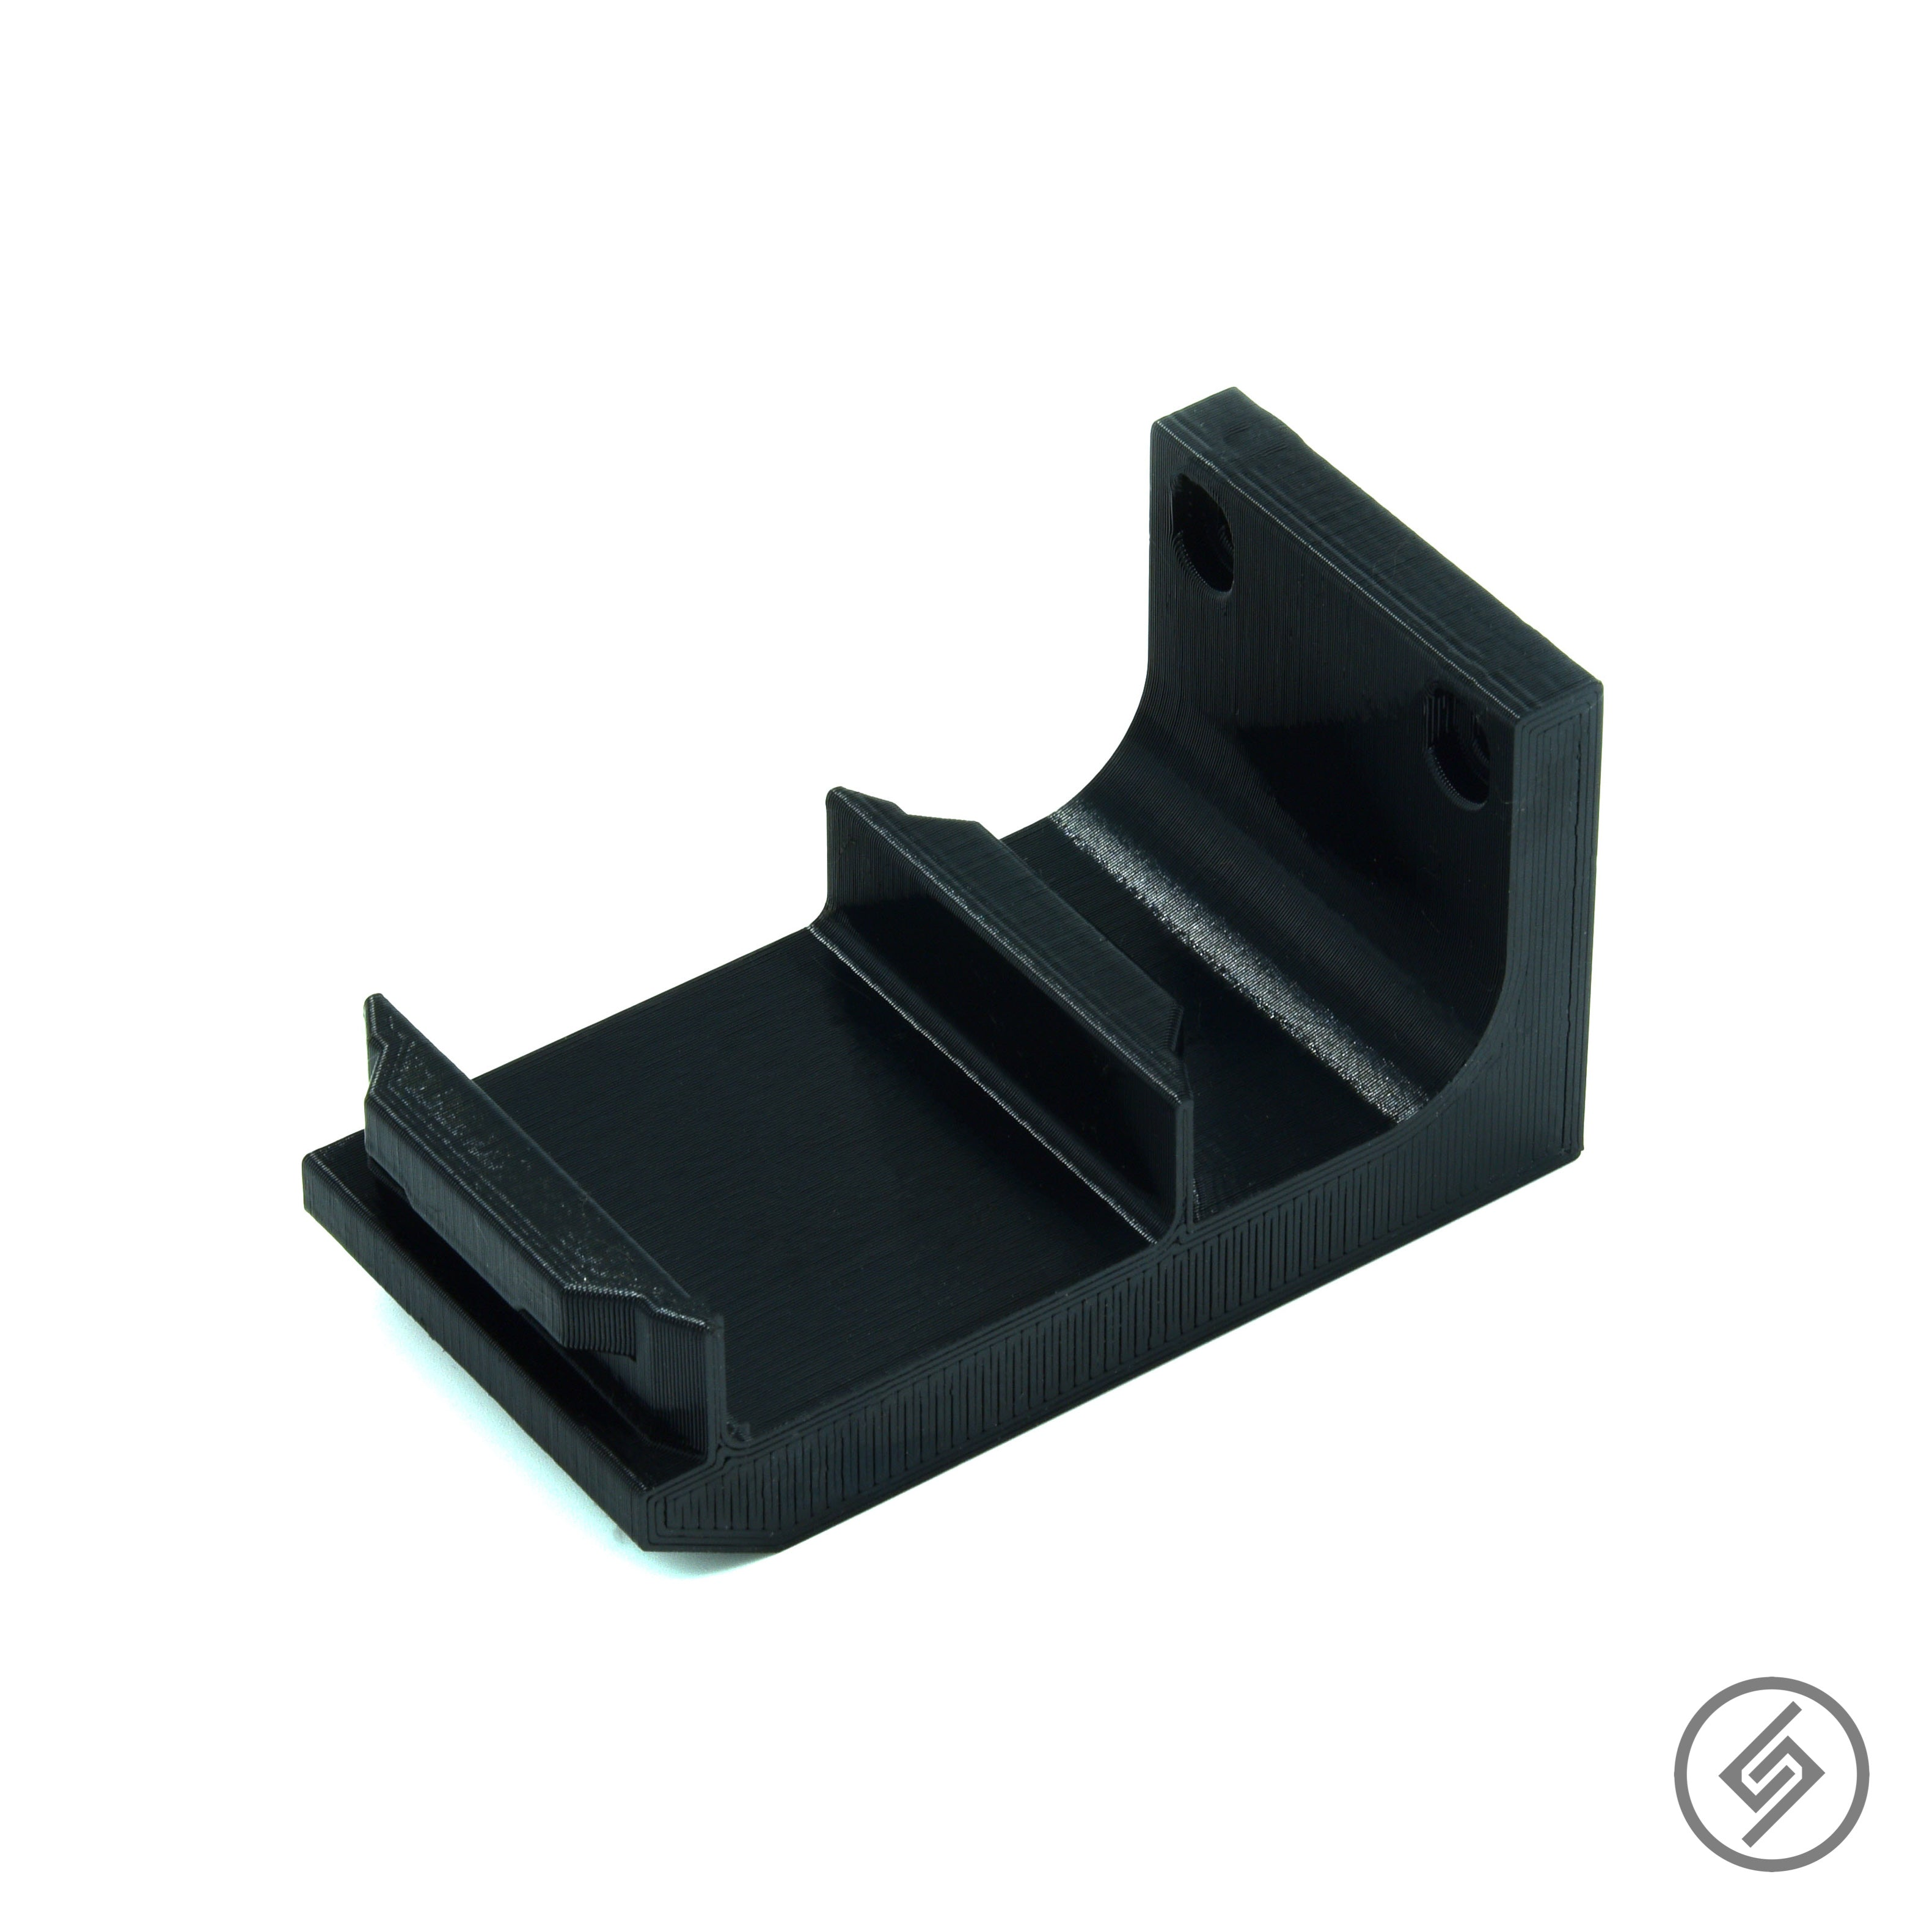 Mount for MAKITA 12V Power Tools, Spartan Mounts, Product Photo